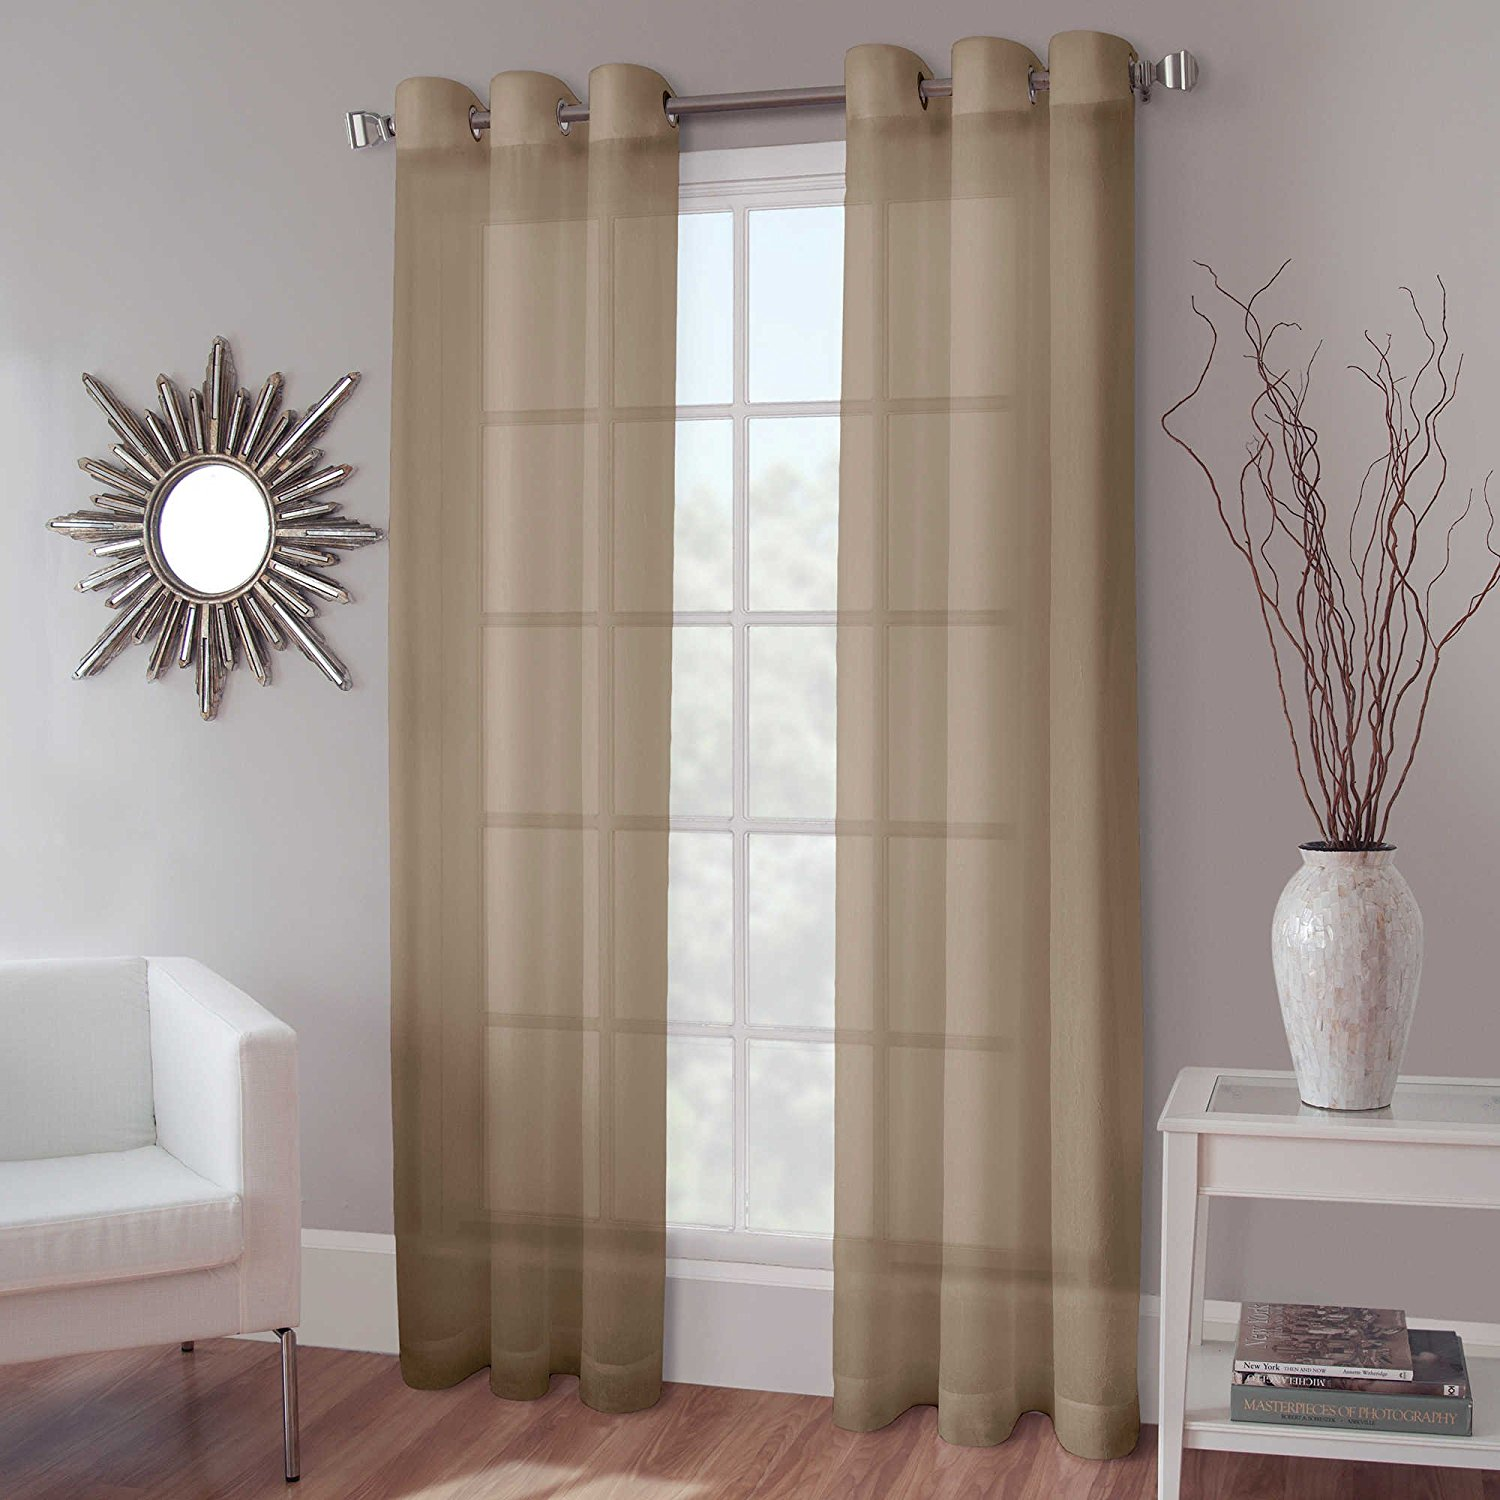 "1 PANEL MIRA  SOLID TAUPE TAN  SEMI SHEER WINDOW FAUX SILK ANTIQUE BRONZE GROMMETS CURTAIN DRAPES 55 WIDE X 63"" LENGTH"